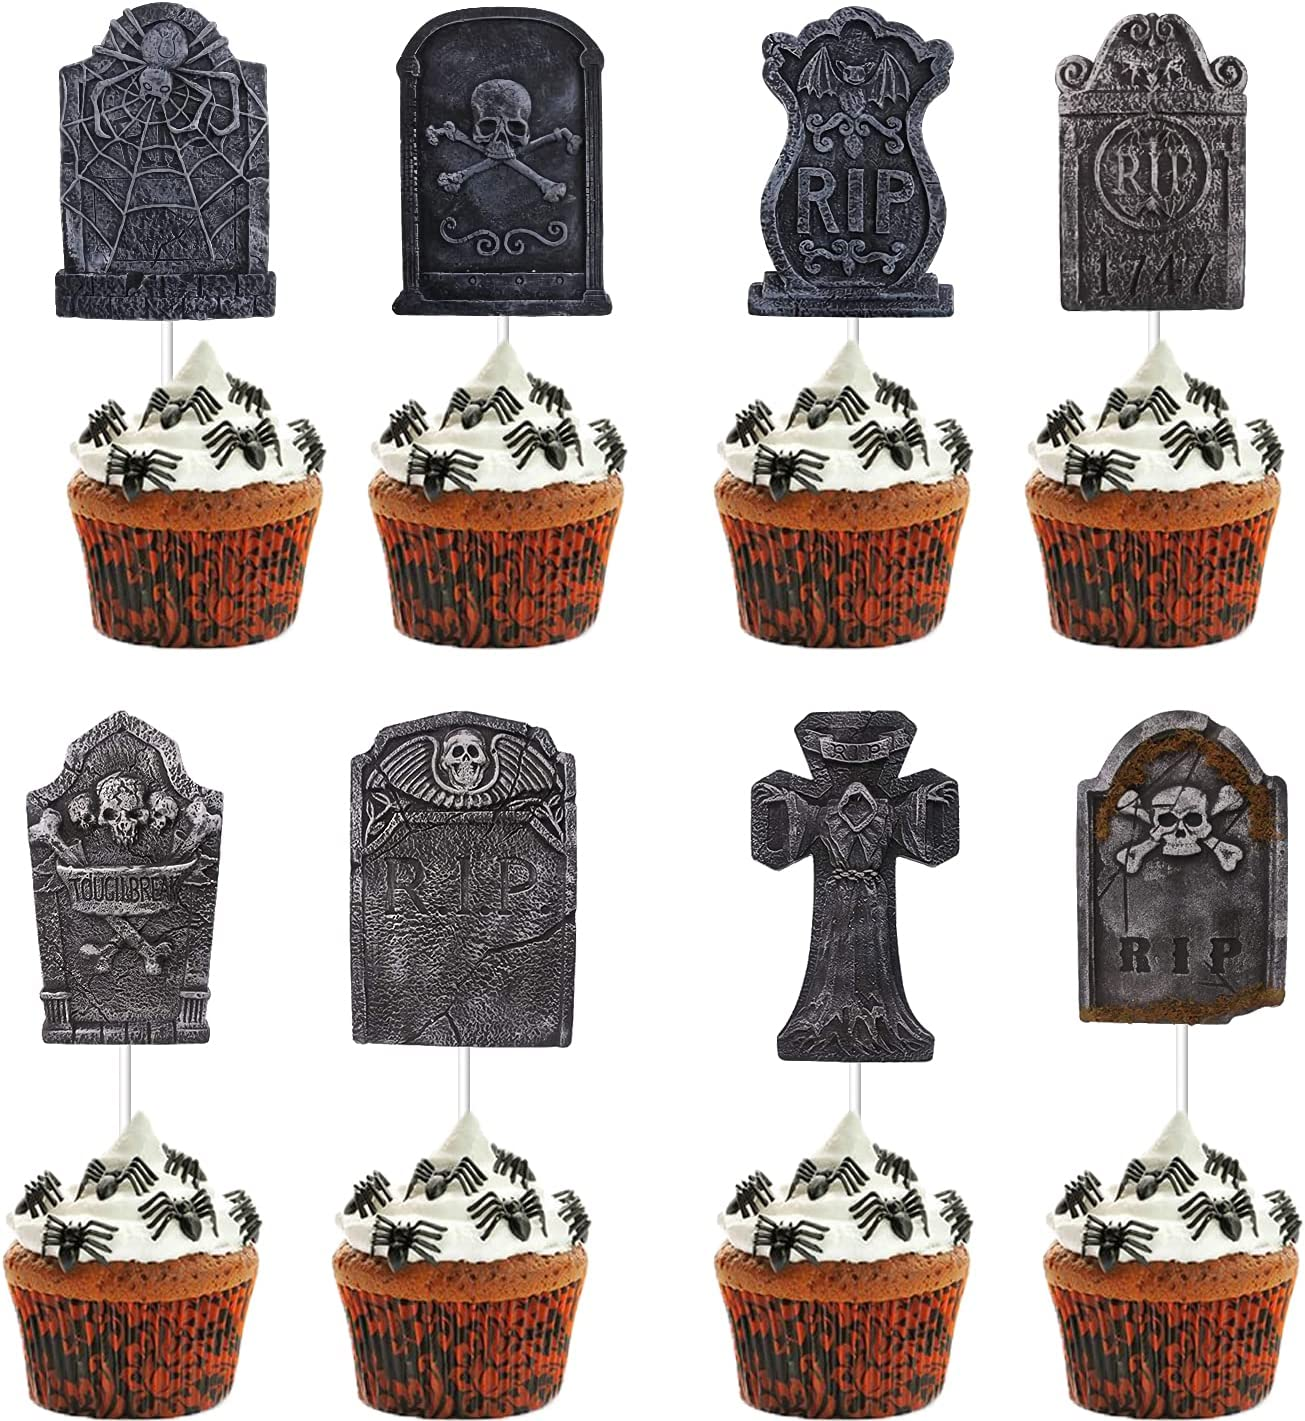 48 Pieces Tombstone Cupcake Toppers,Cupcake Toppers Halloween,Tombstone Cake Topper,Picks Graveyard Cupcake Toppers Gravestone Cake Toppers for Halloween Party Supplies